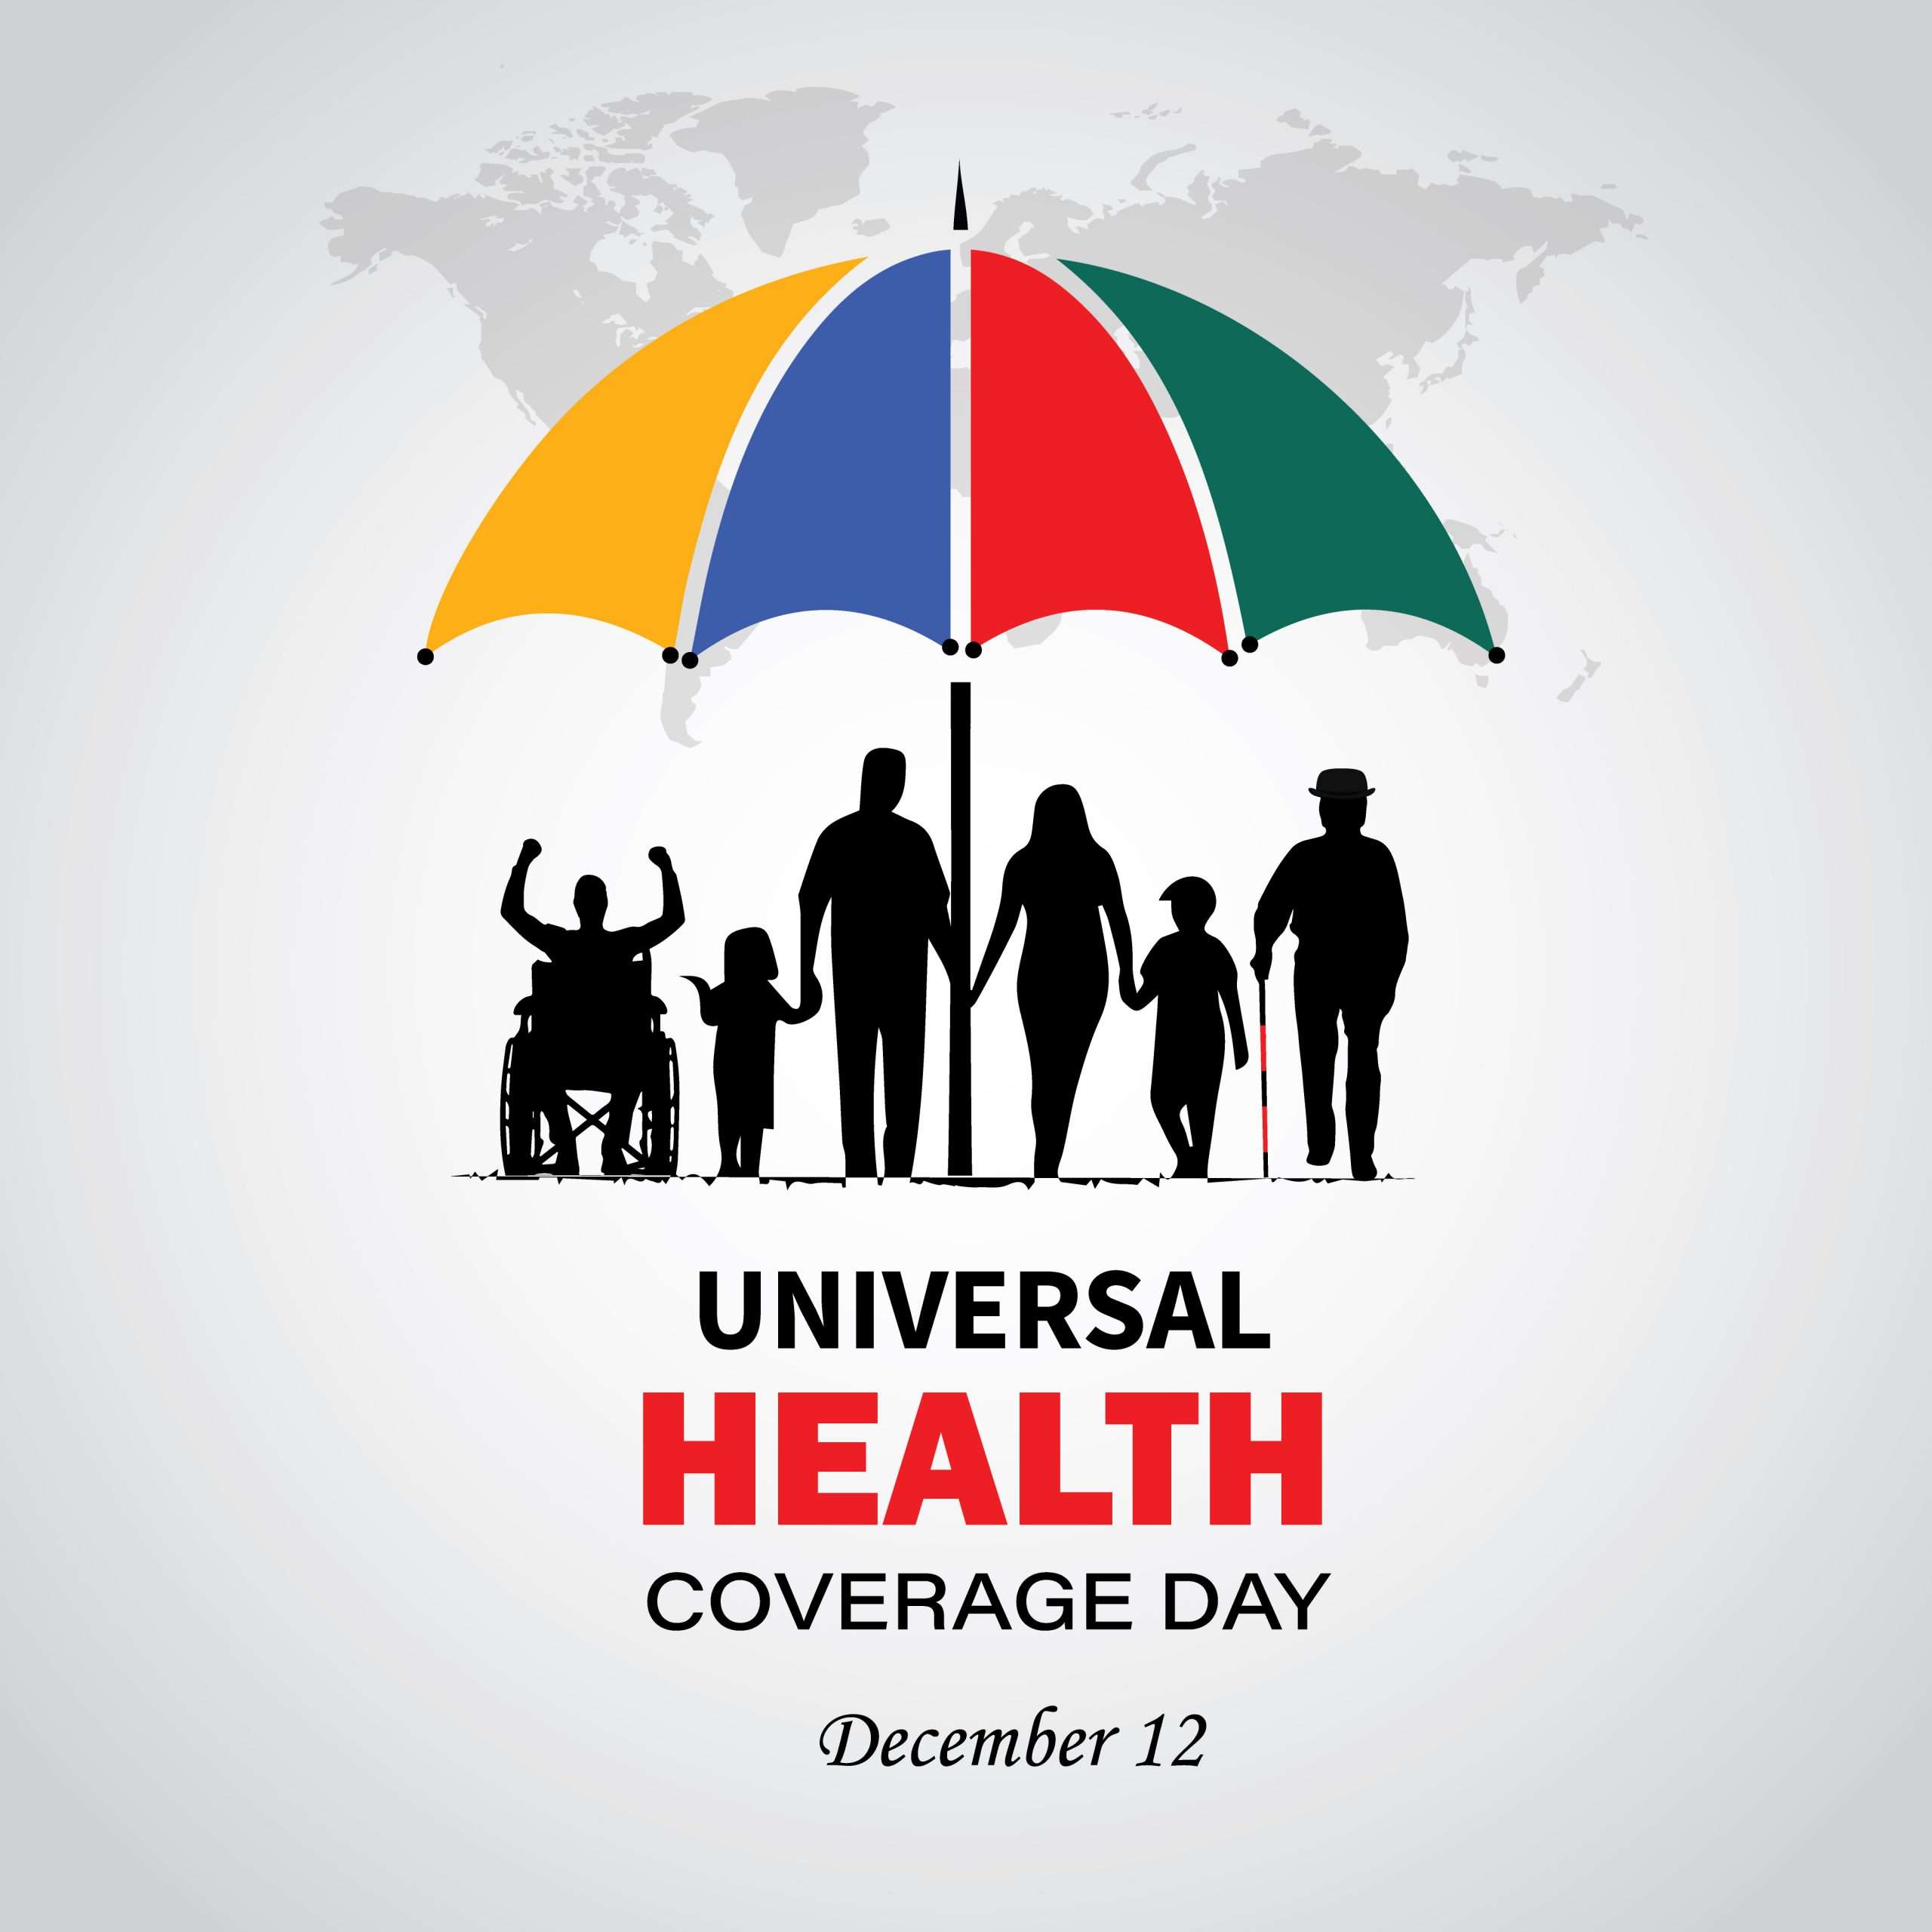 Digitalisation of Health to improve Universal Health Coverage in India